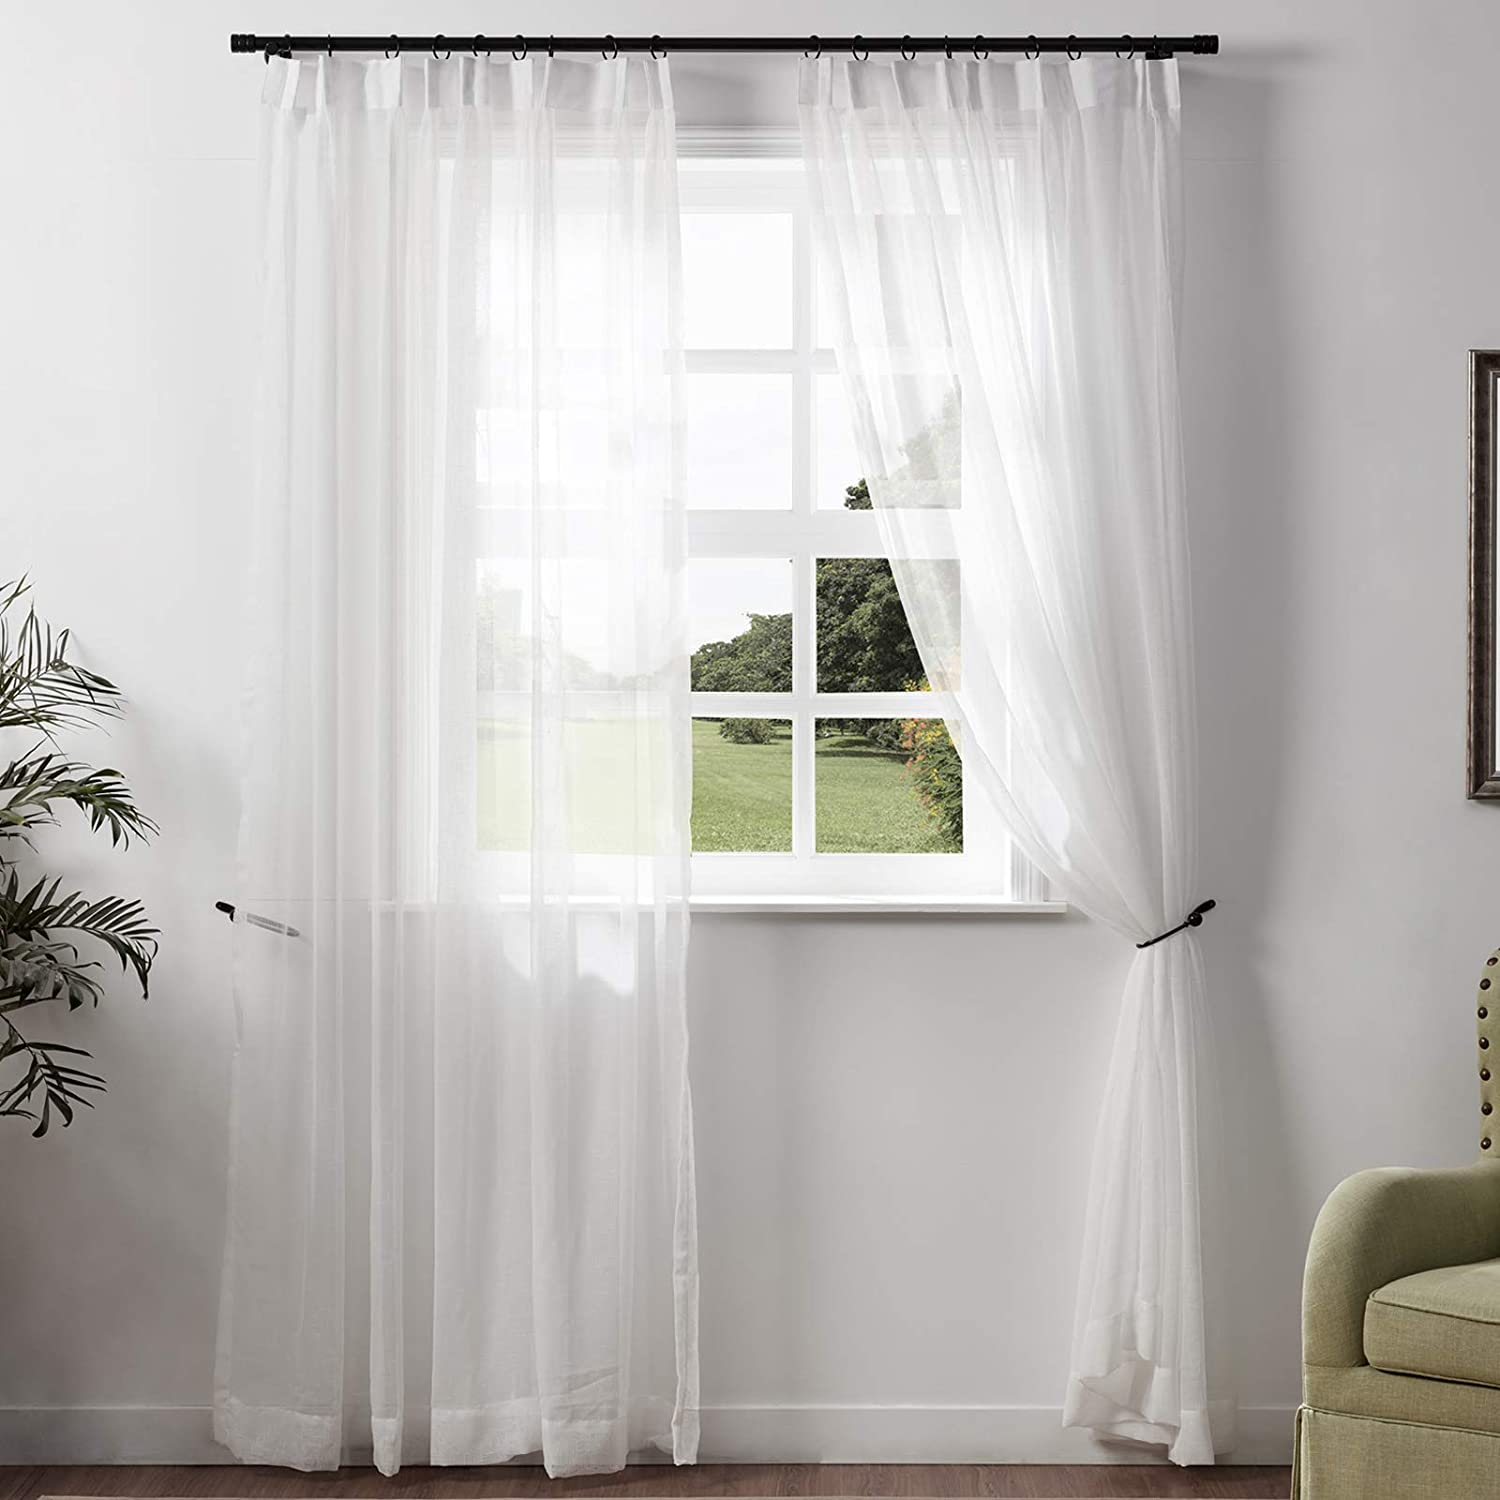 Limited time for free shipping ChadMade Extra Long Popular product Natural Linen Sheer 144 Inch Pinc Drape